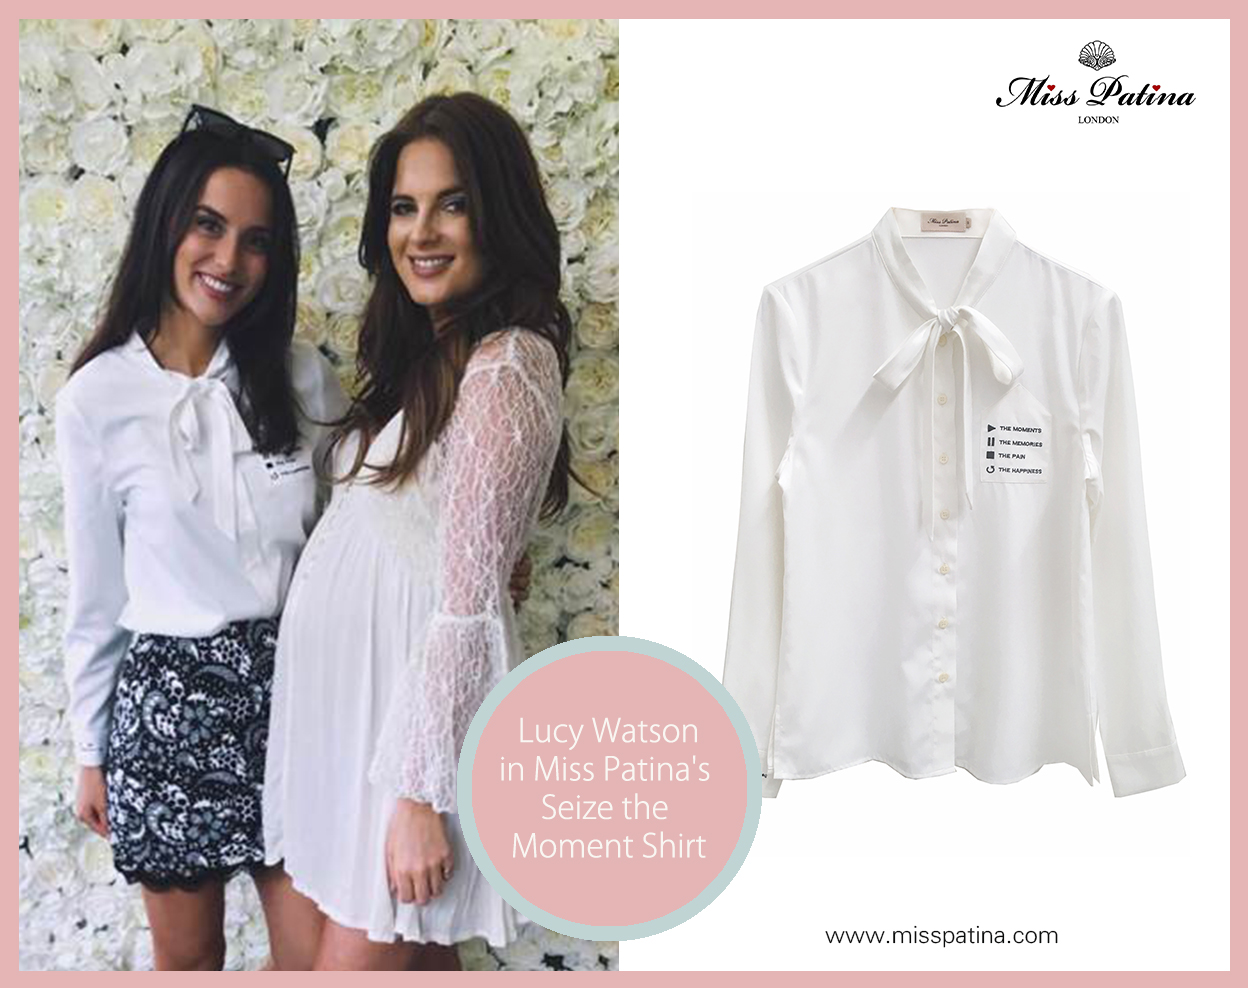 Spotted: Lucy Watson in Miss Patina!